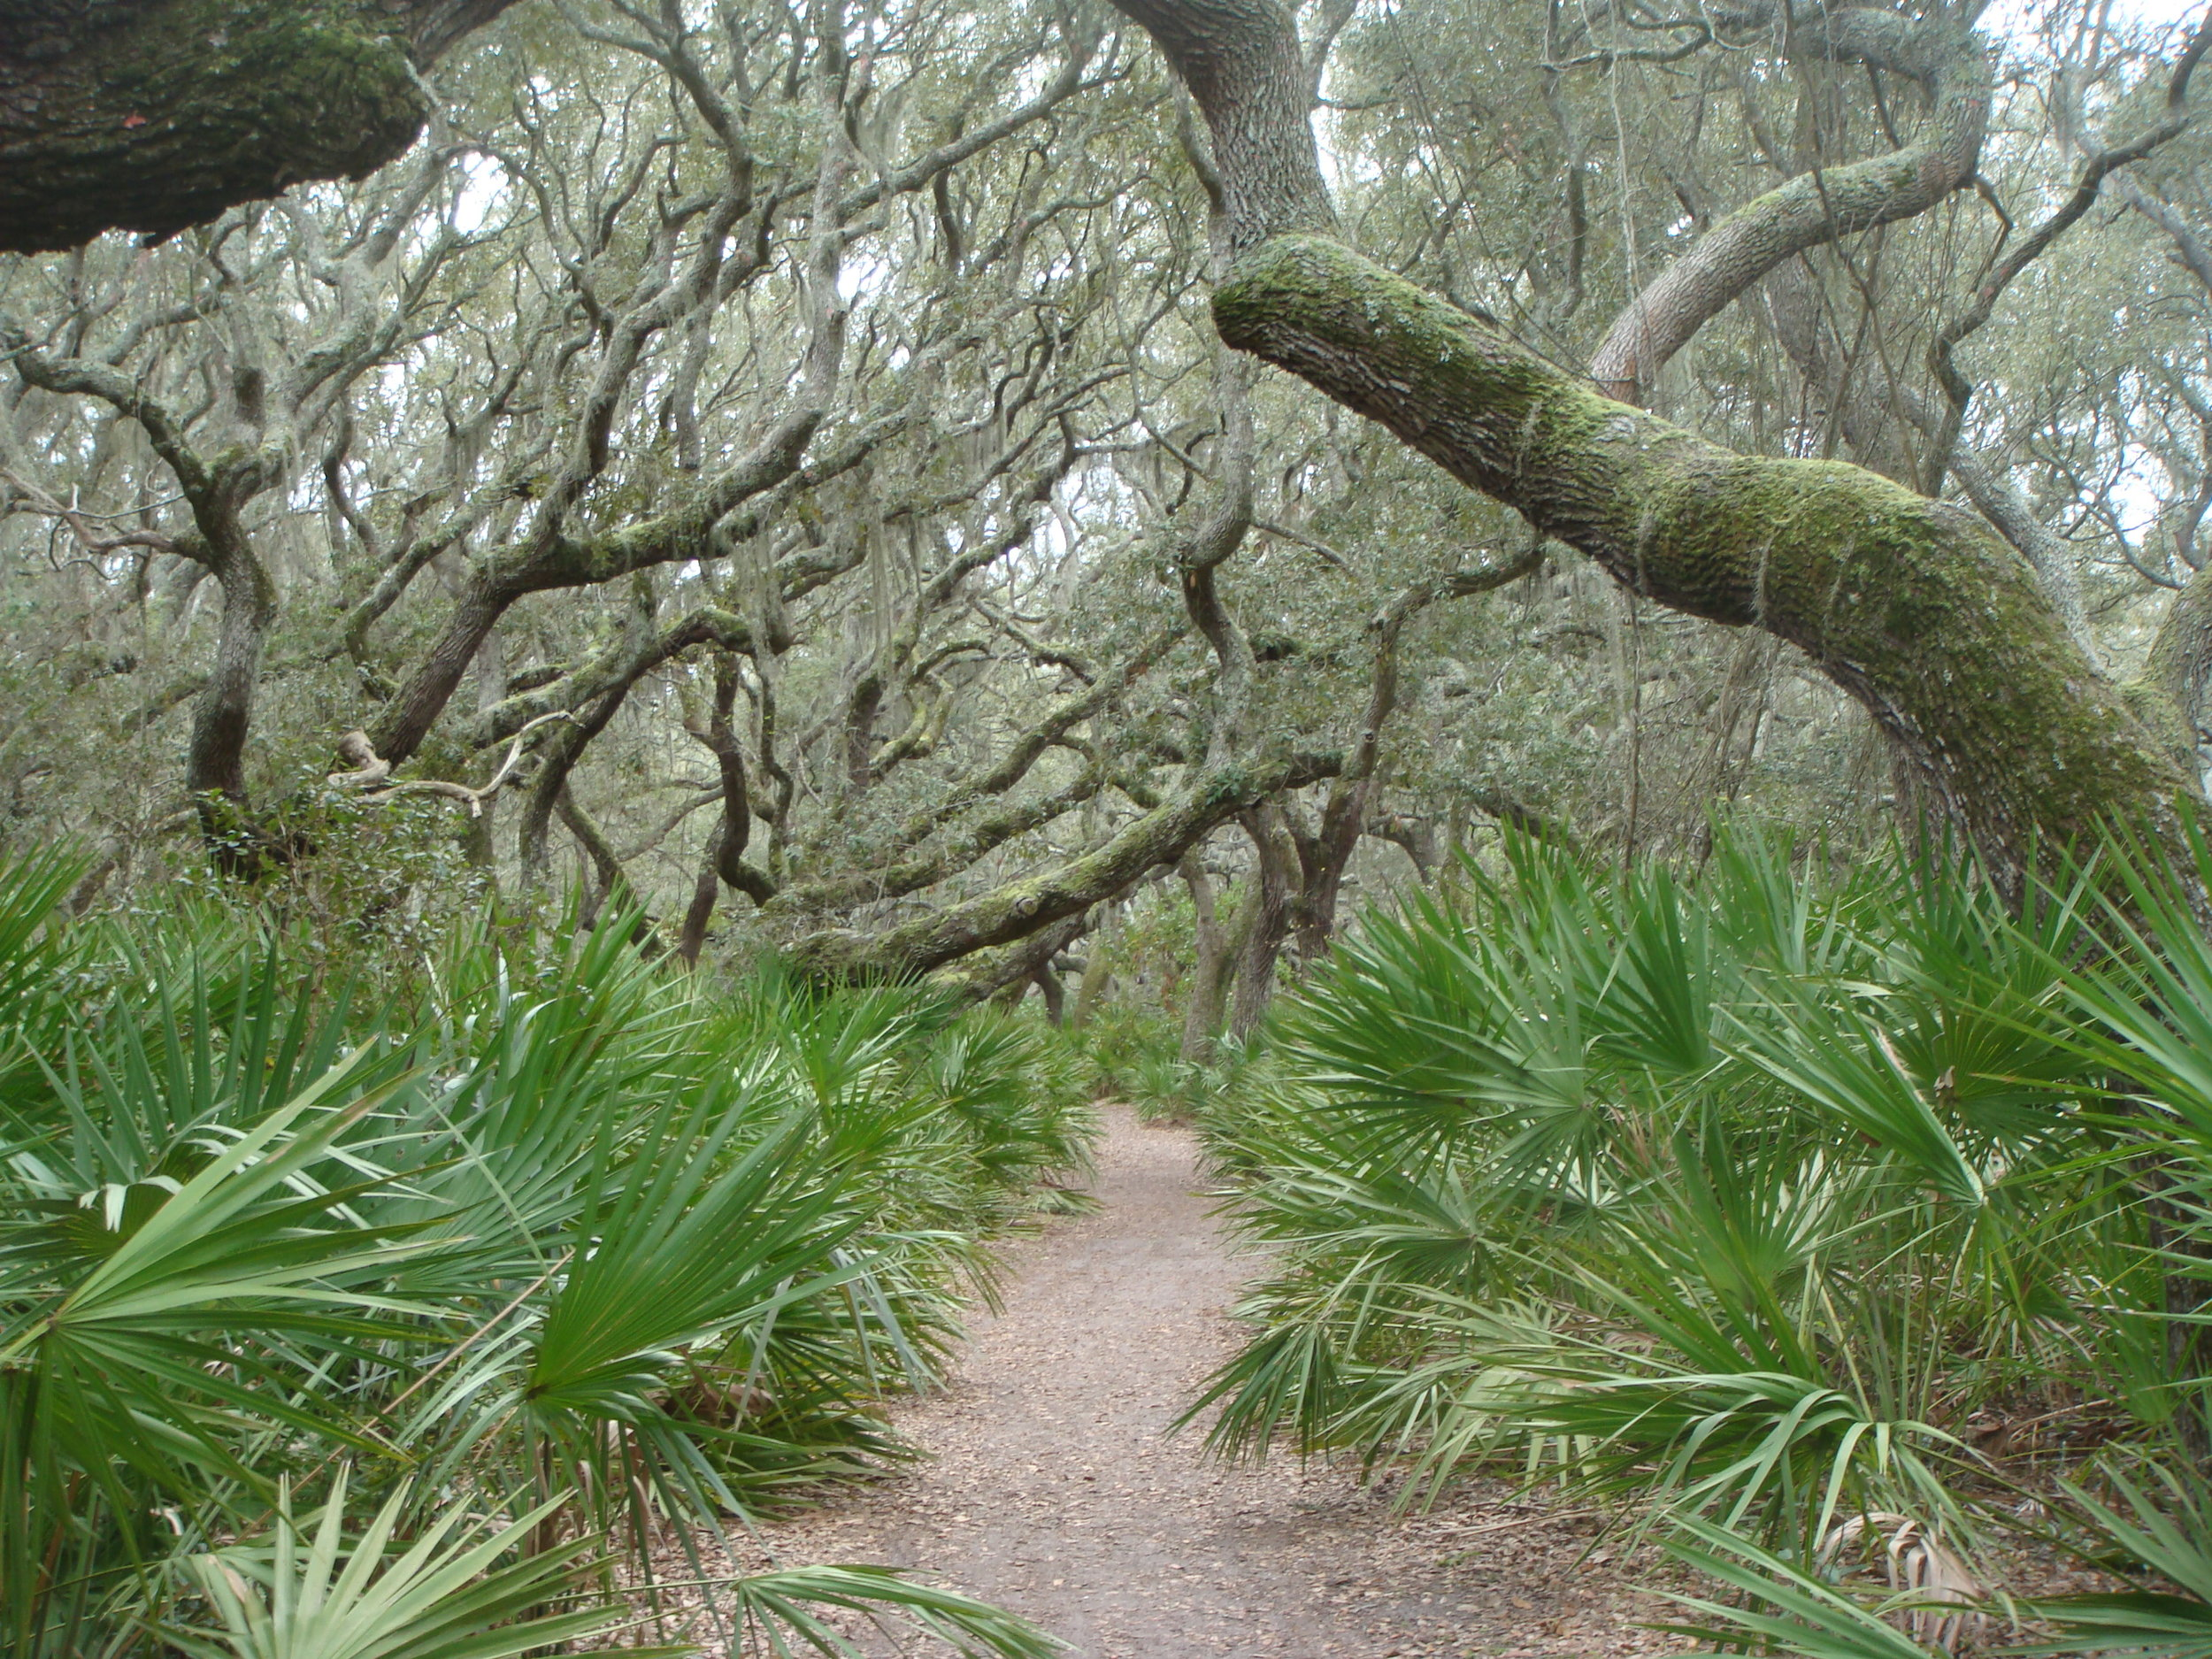 Cumberland Island includes 10,000 acres of wilderness offering many hiking opportunities.